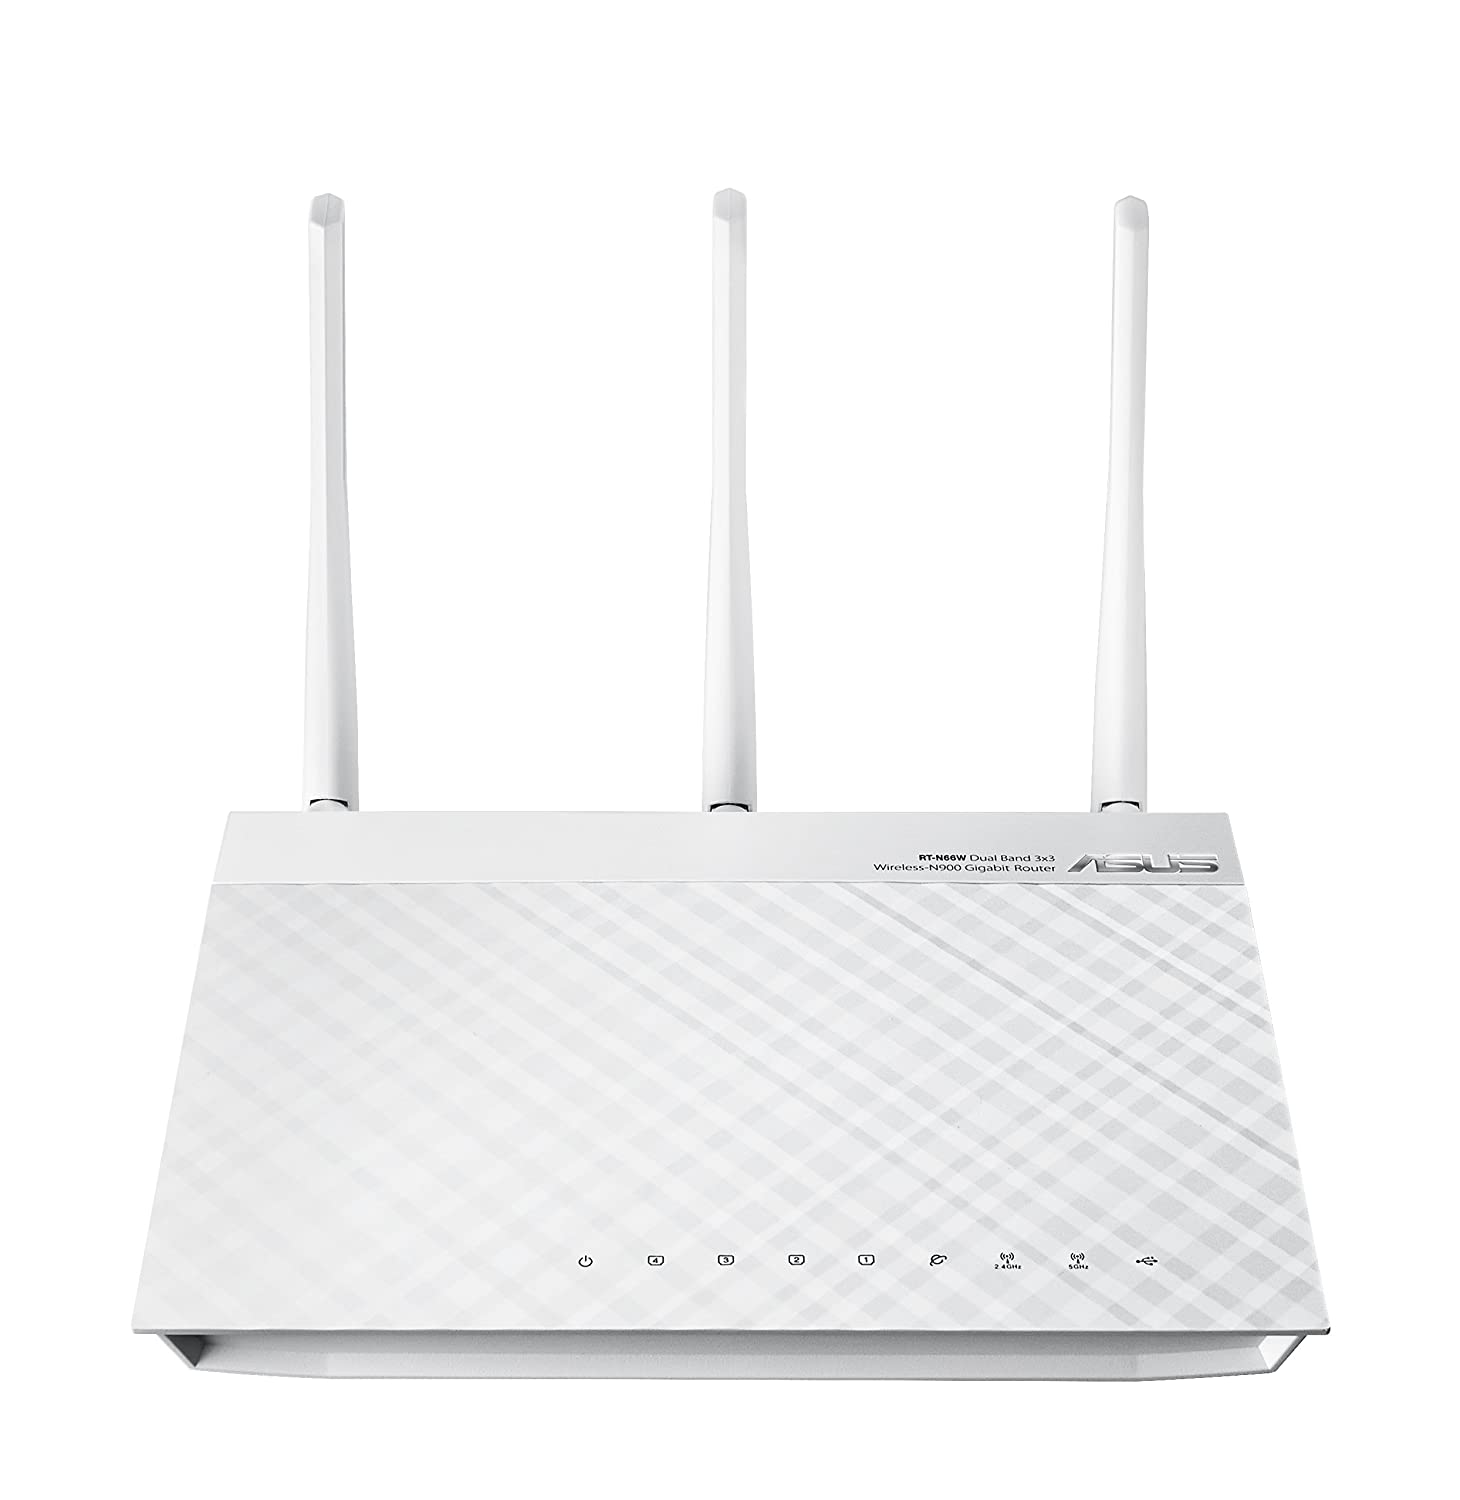 ASUS RT-N66W Dual-Band Wireless-N900 Gigabit Router (White Version) $100